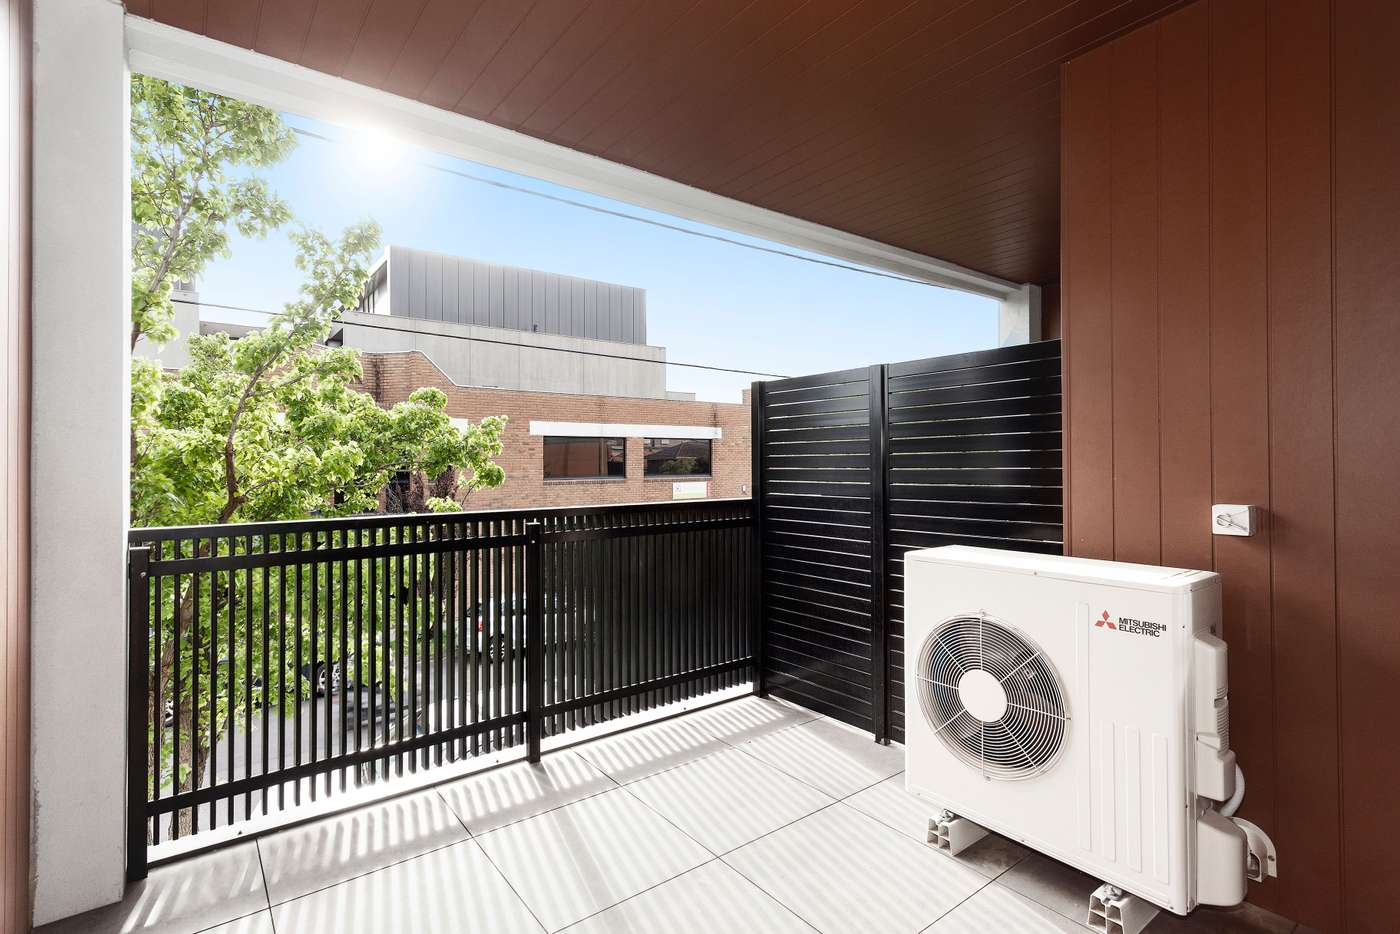 Sixth view of Homely apartment listing, 102/323 Neerim Road, Carnegie VIC 3163